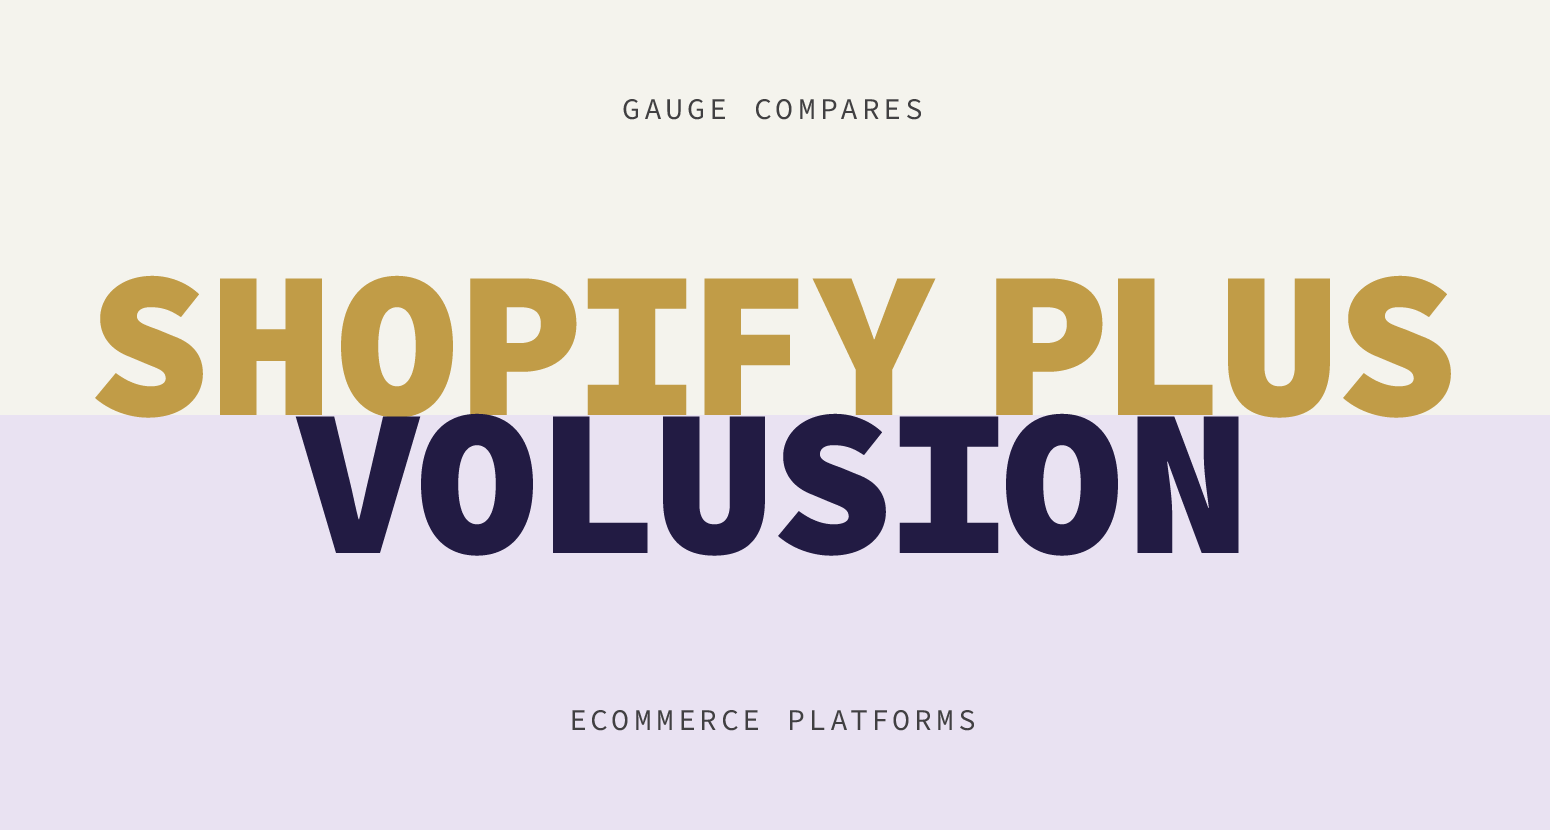 Comparing Shopify Plus to Volusion